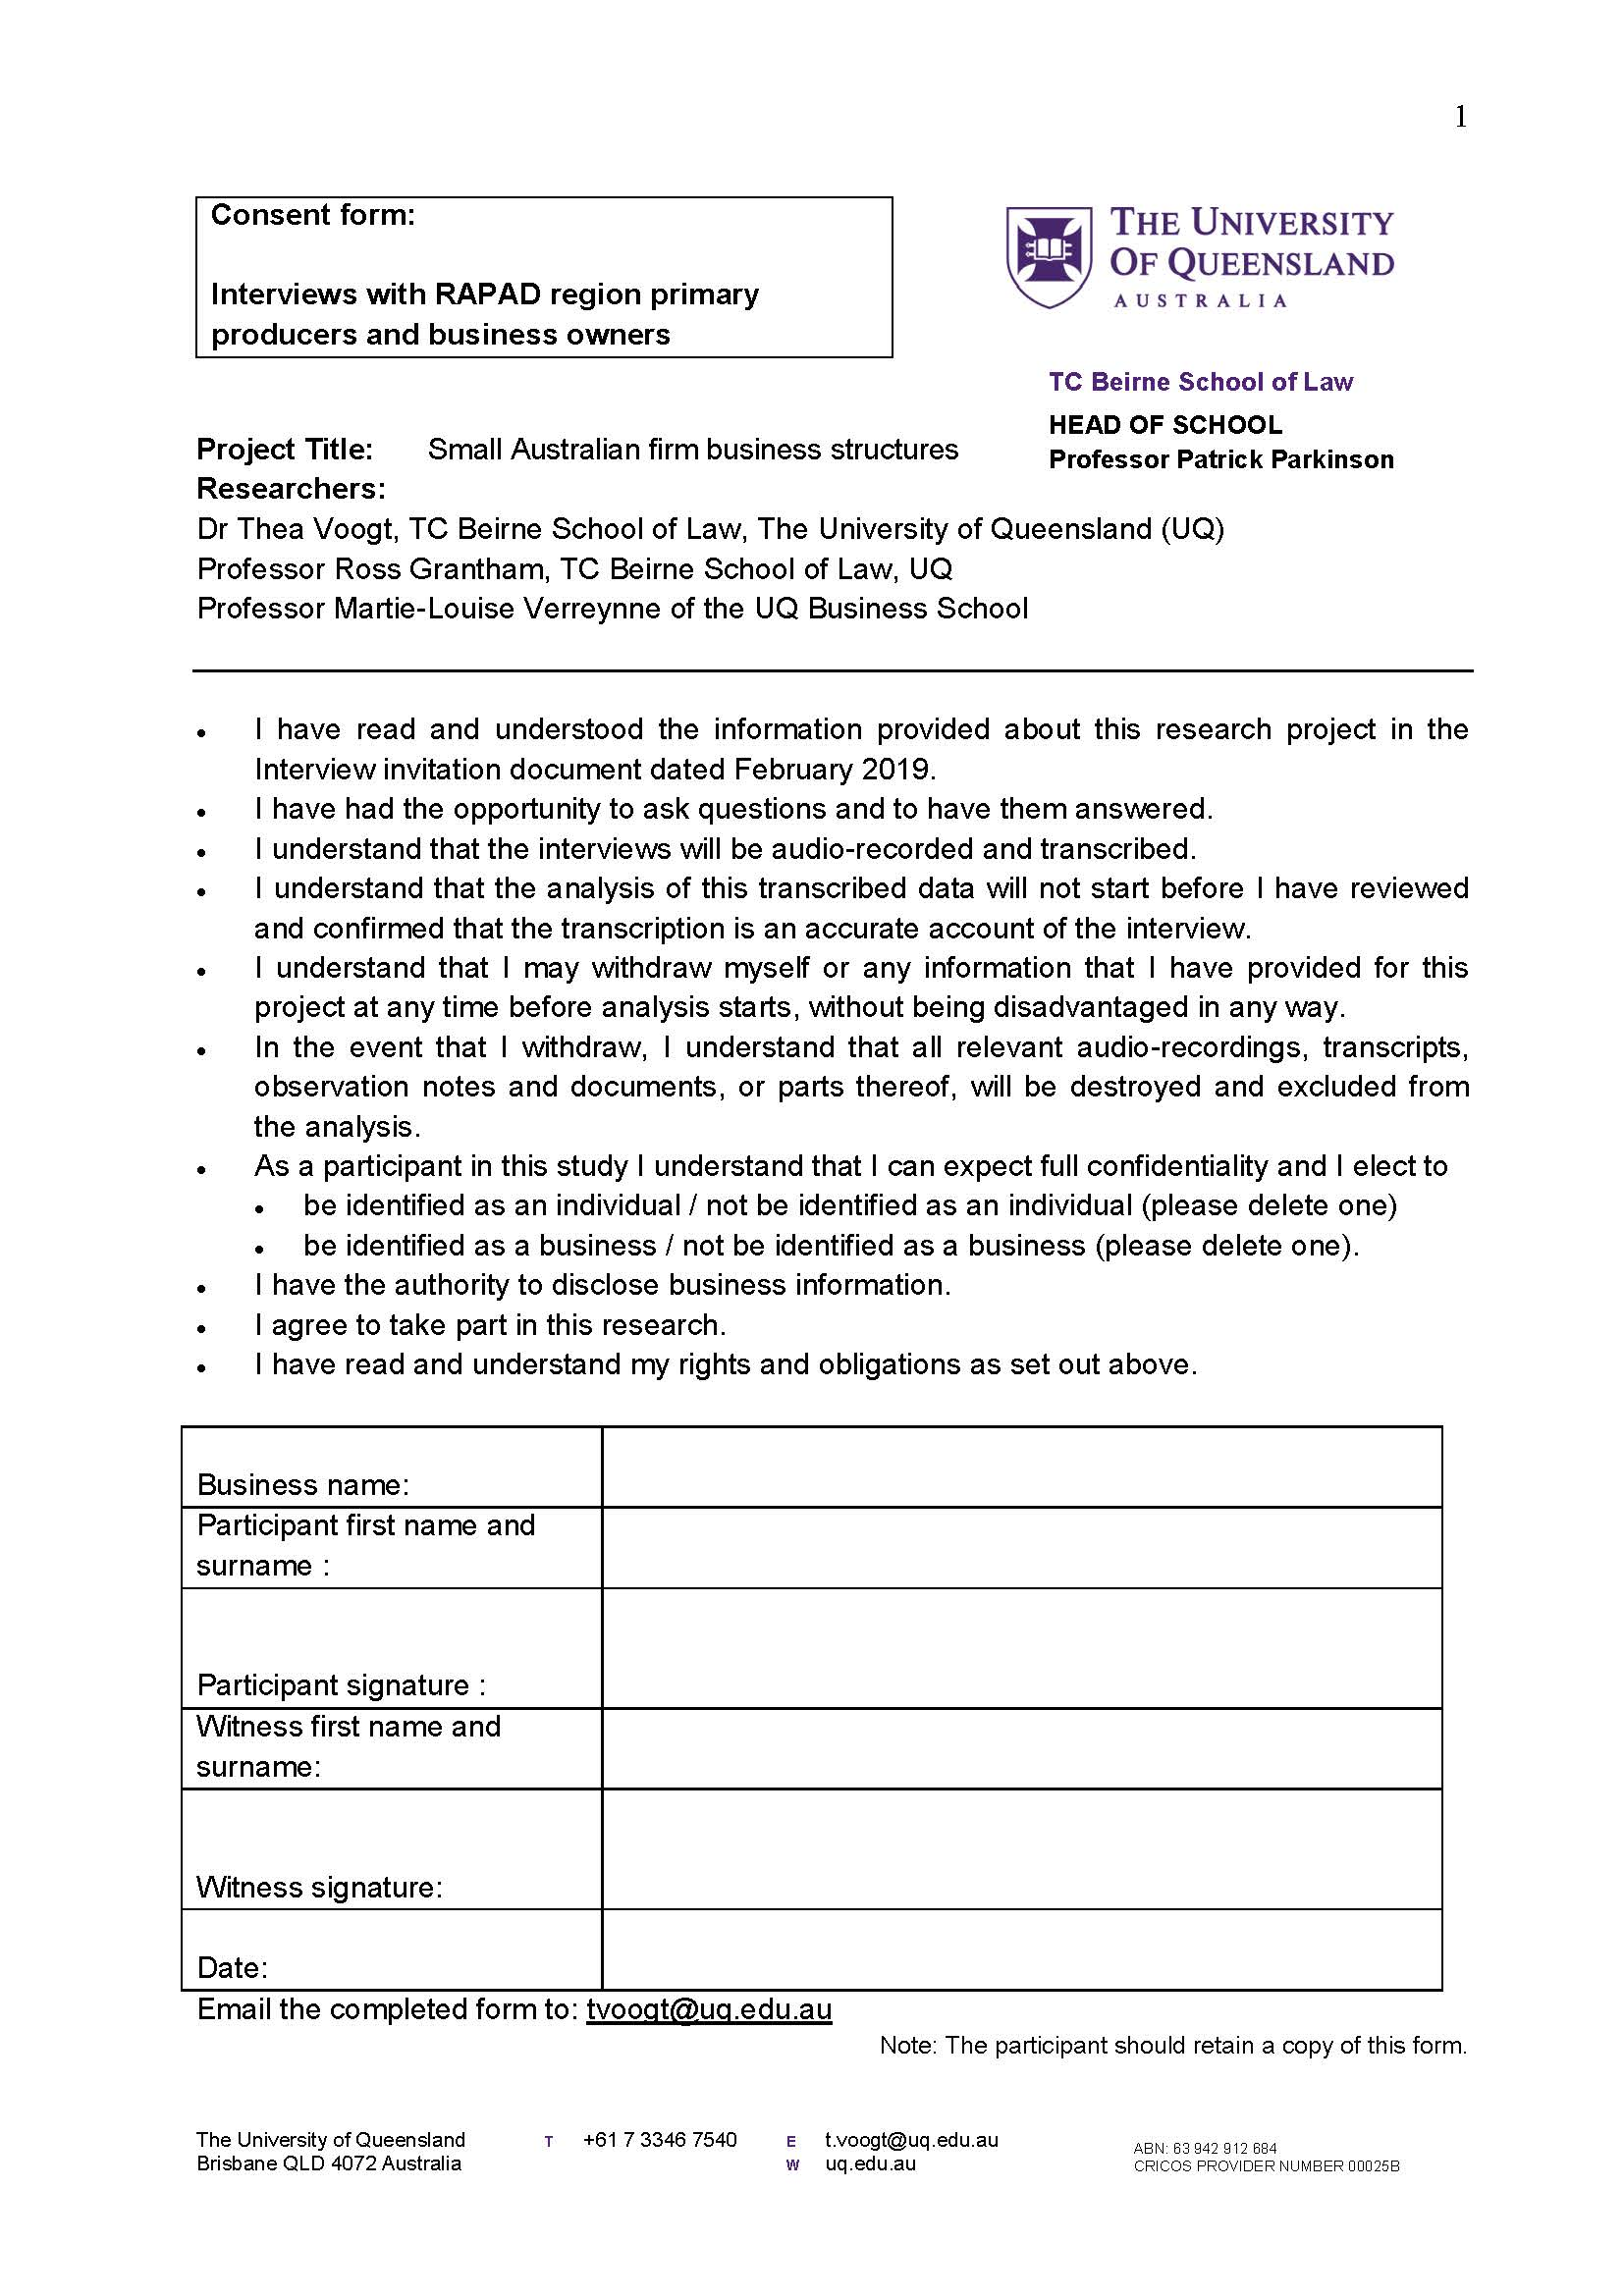 Thumbnail of Interview Consent Form